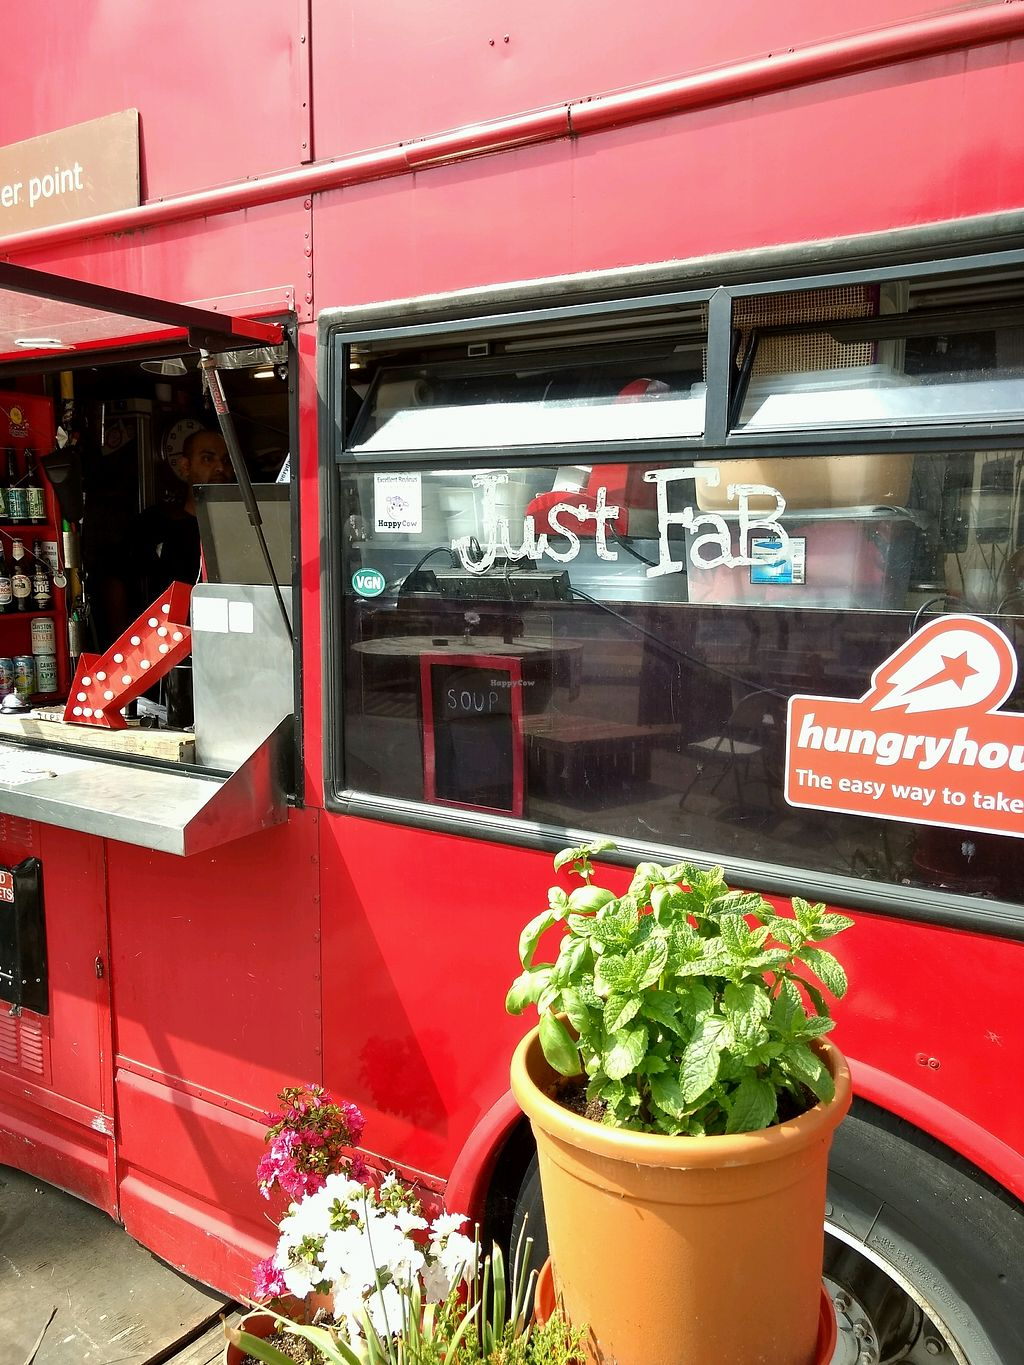 "Photo of Just FaB - Food Bus  by <a href=""/members/profile/craigmc"">craigmc</a> <br/>decal <br/> April 21, 2018  - <a href='/contact/abuse/image/57709/389008'>Report</a>"